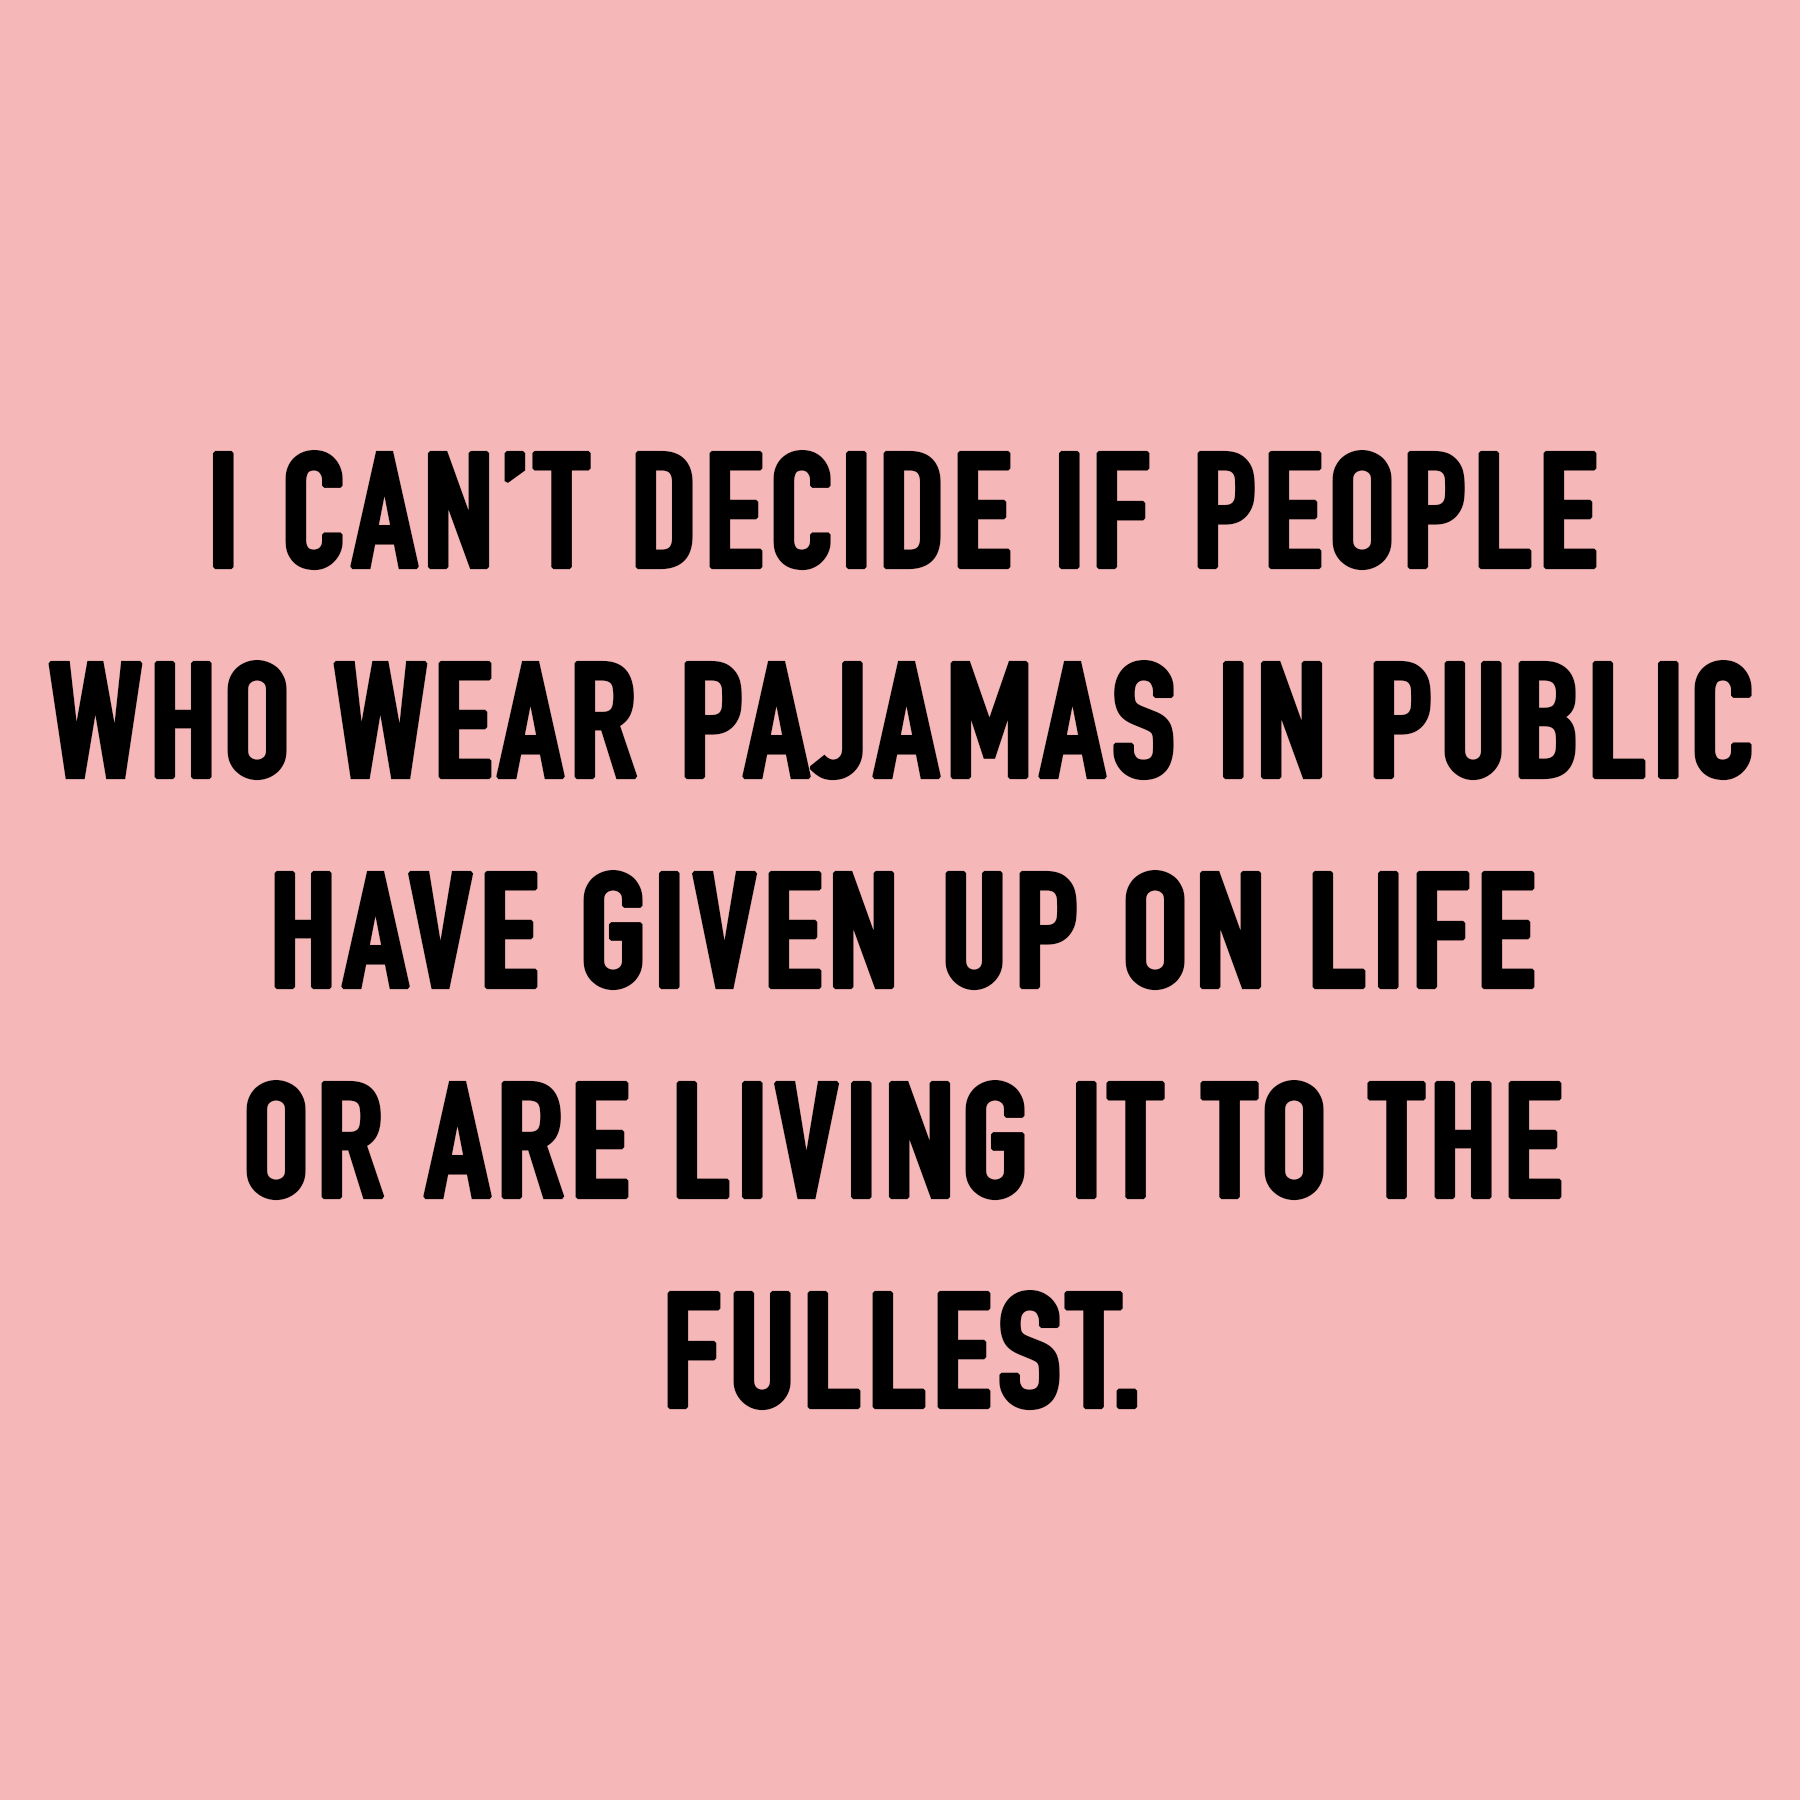 I CAN'T DECIDE IF PEOPLE WHO WEAR PAJAMAS IN PUBLIC HAVE GIVEN UP ON LIFE OR ARE LIVING IT TO THE FULLEST.